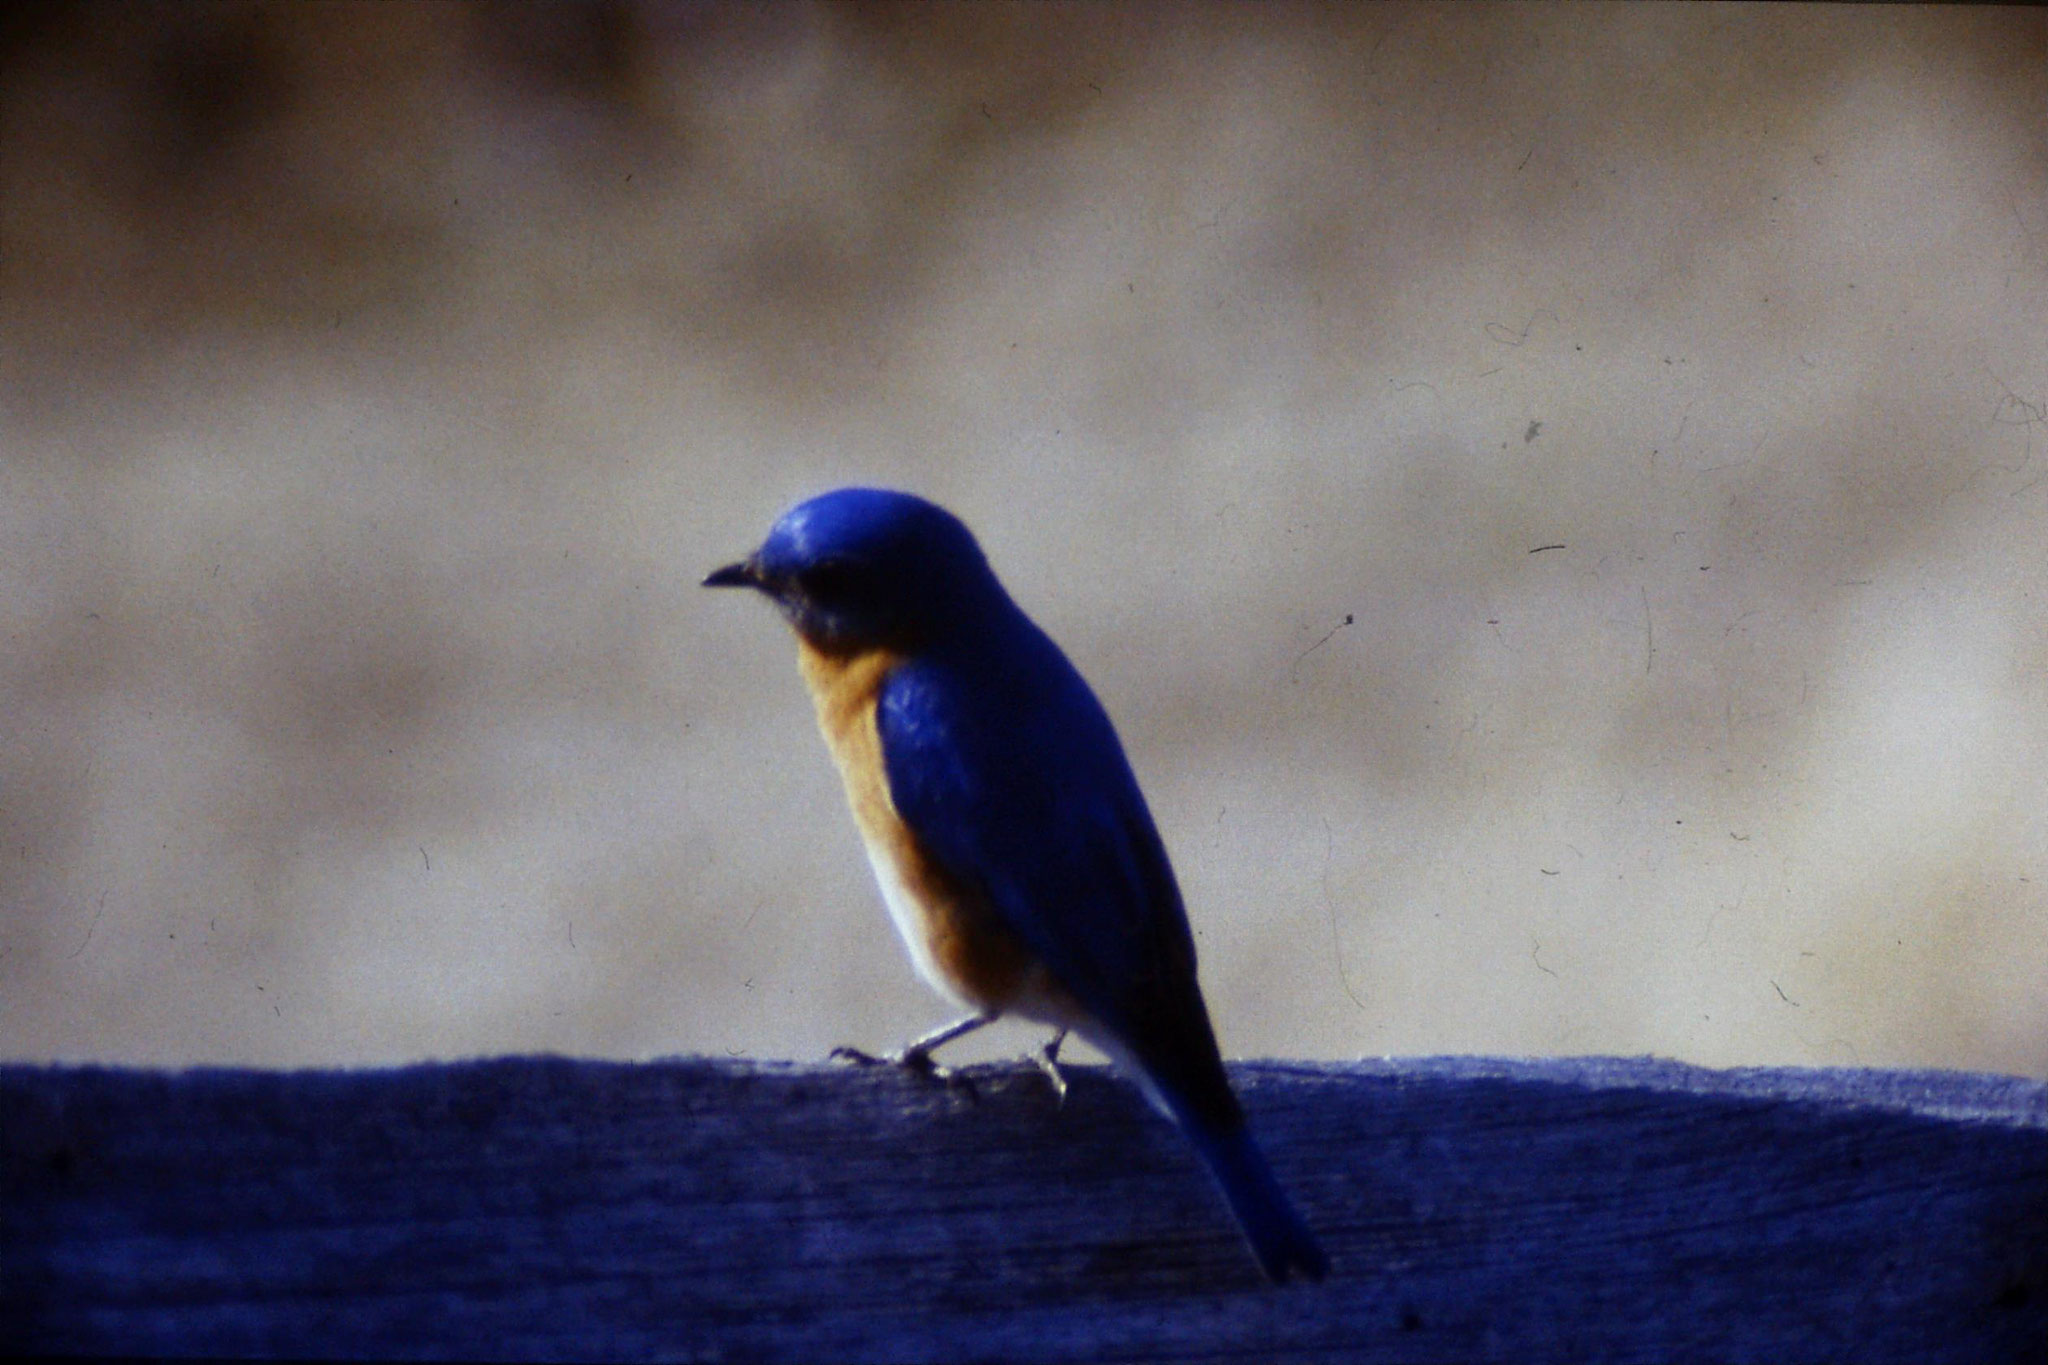 21/3/1991: 6: Blue Bird at Mary Potter's place